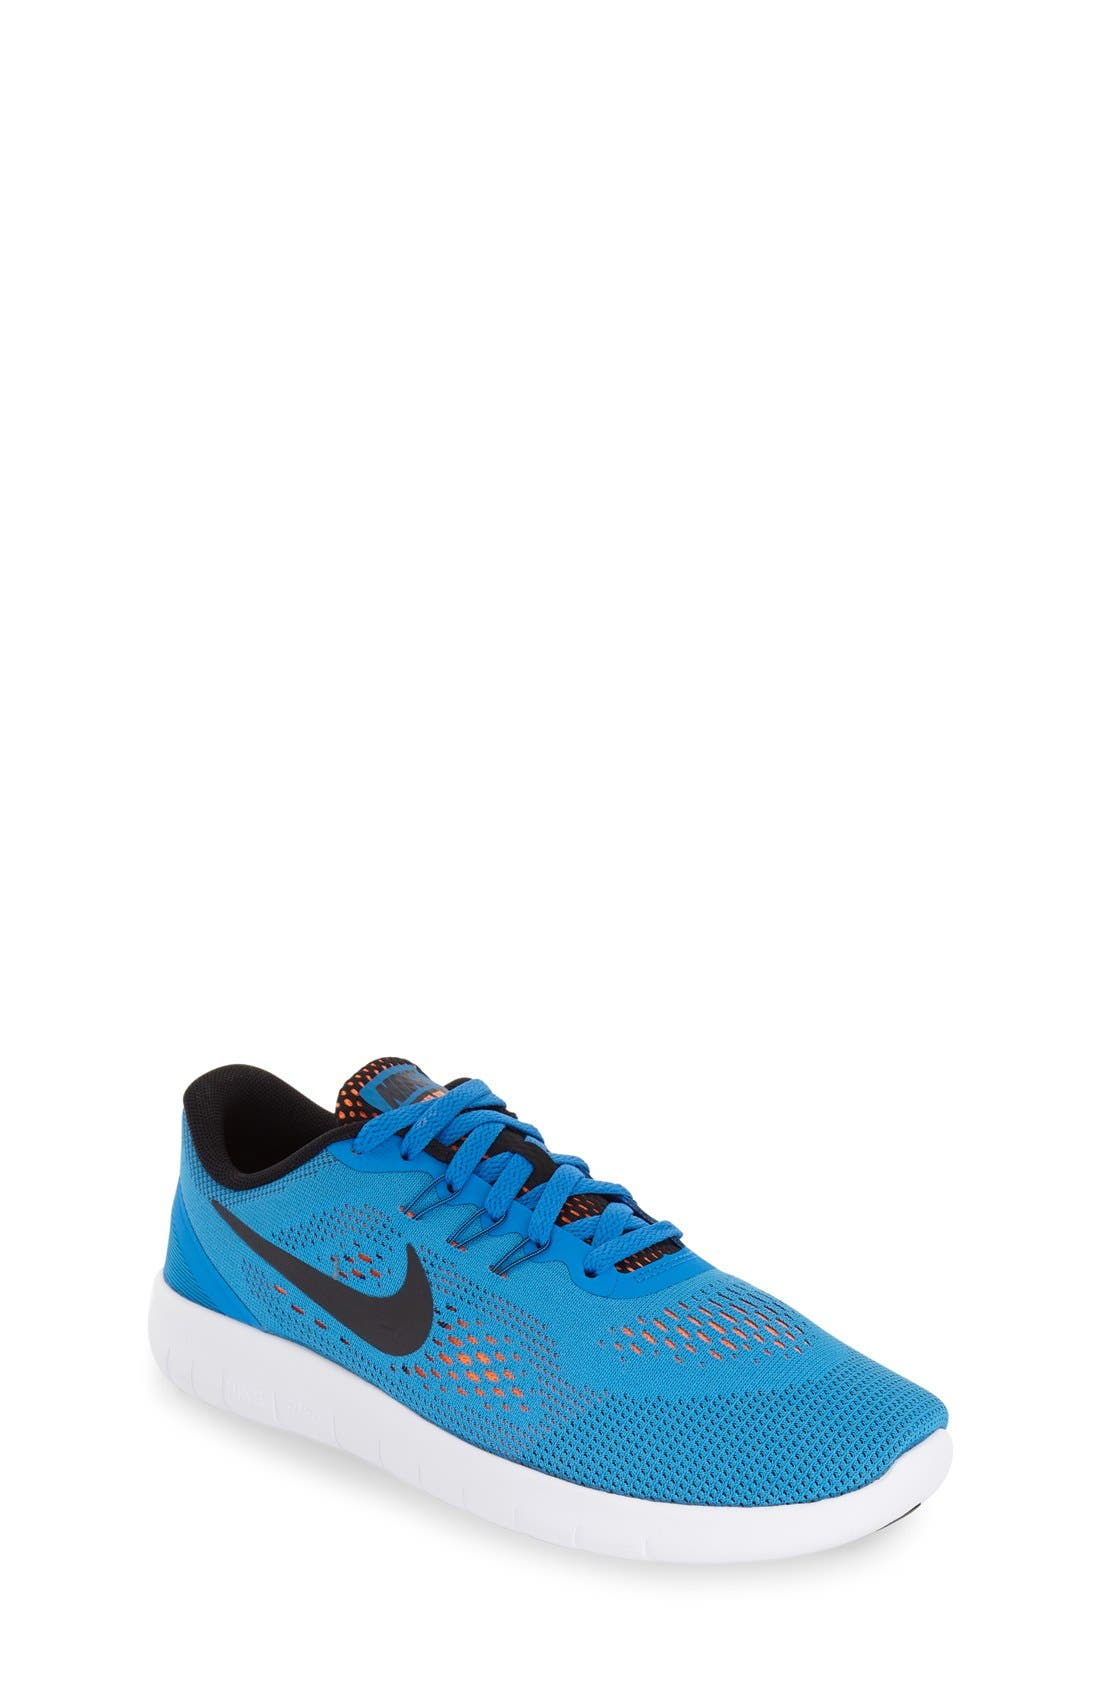 reputable site 1a612 02f2f nike hurricane running shoes for big kids Air max 1 supreme tech pack 2 ...